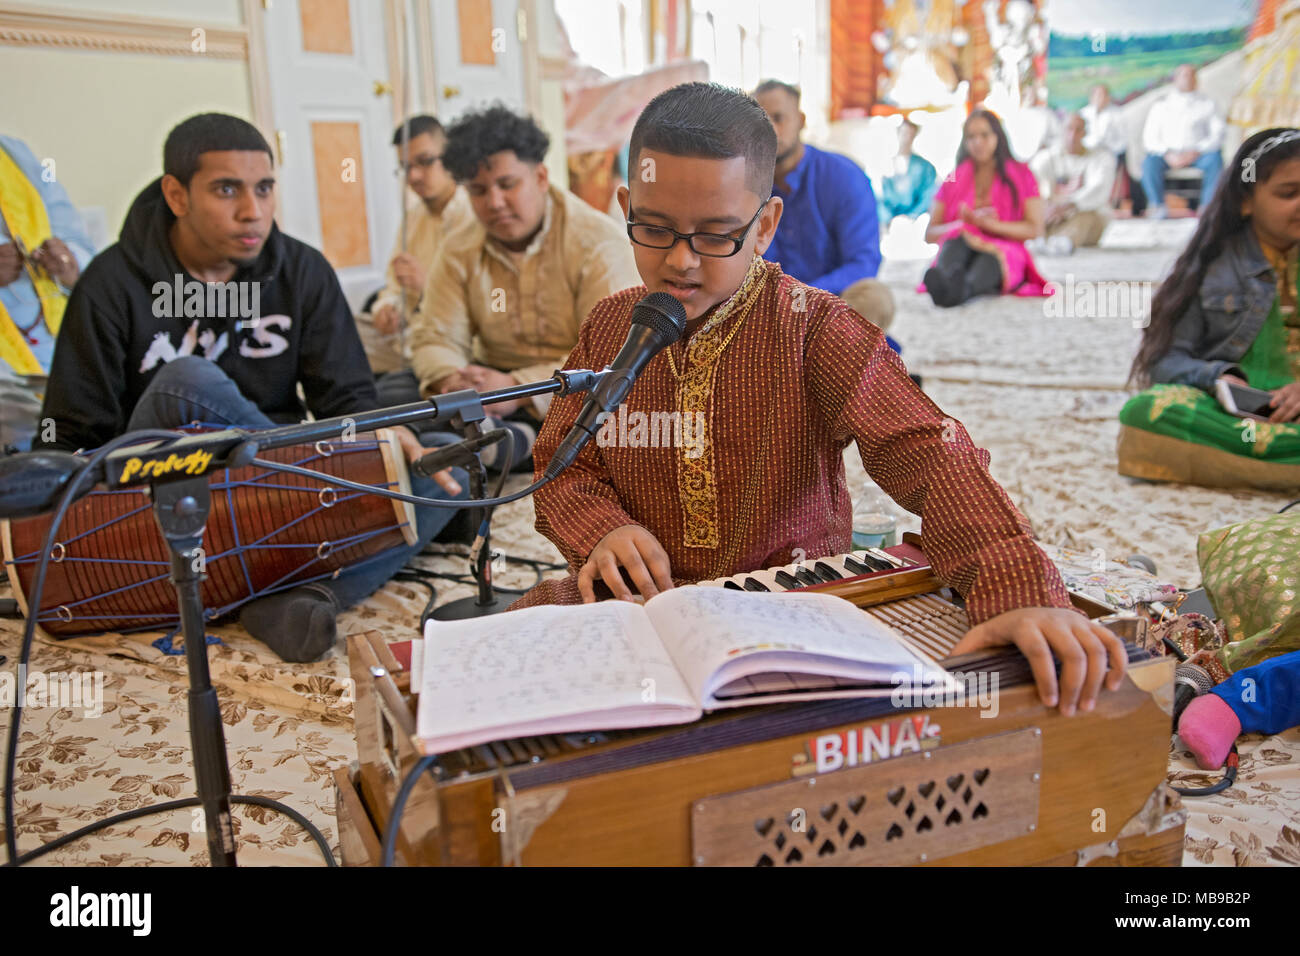 A teenage Hindu boy sings and plays the piano at morning services at at the Tulsi Mandir temple in South Richmond Hill, Queens, New York. - Stock Image